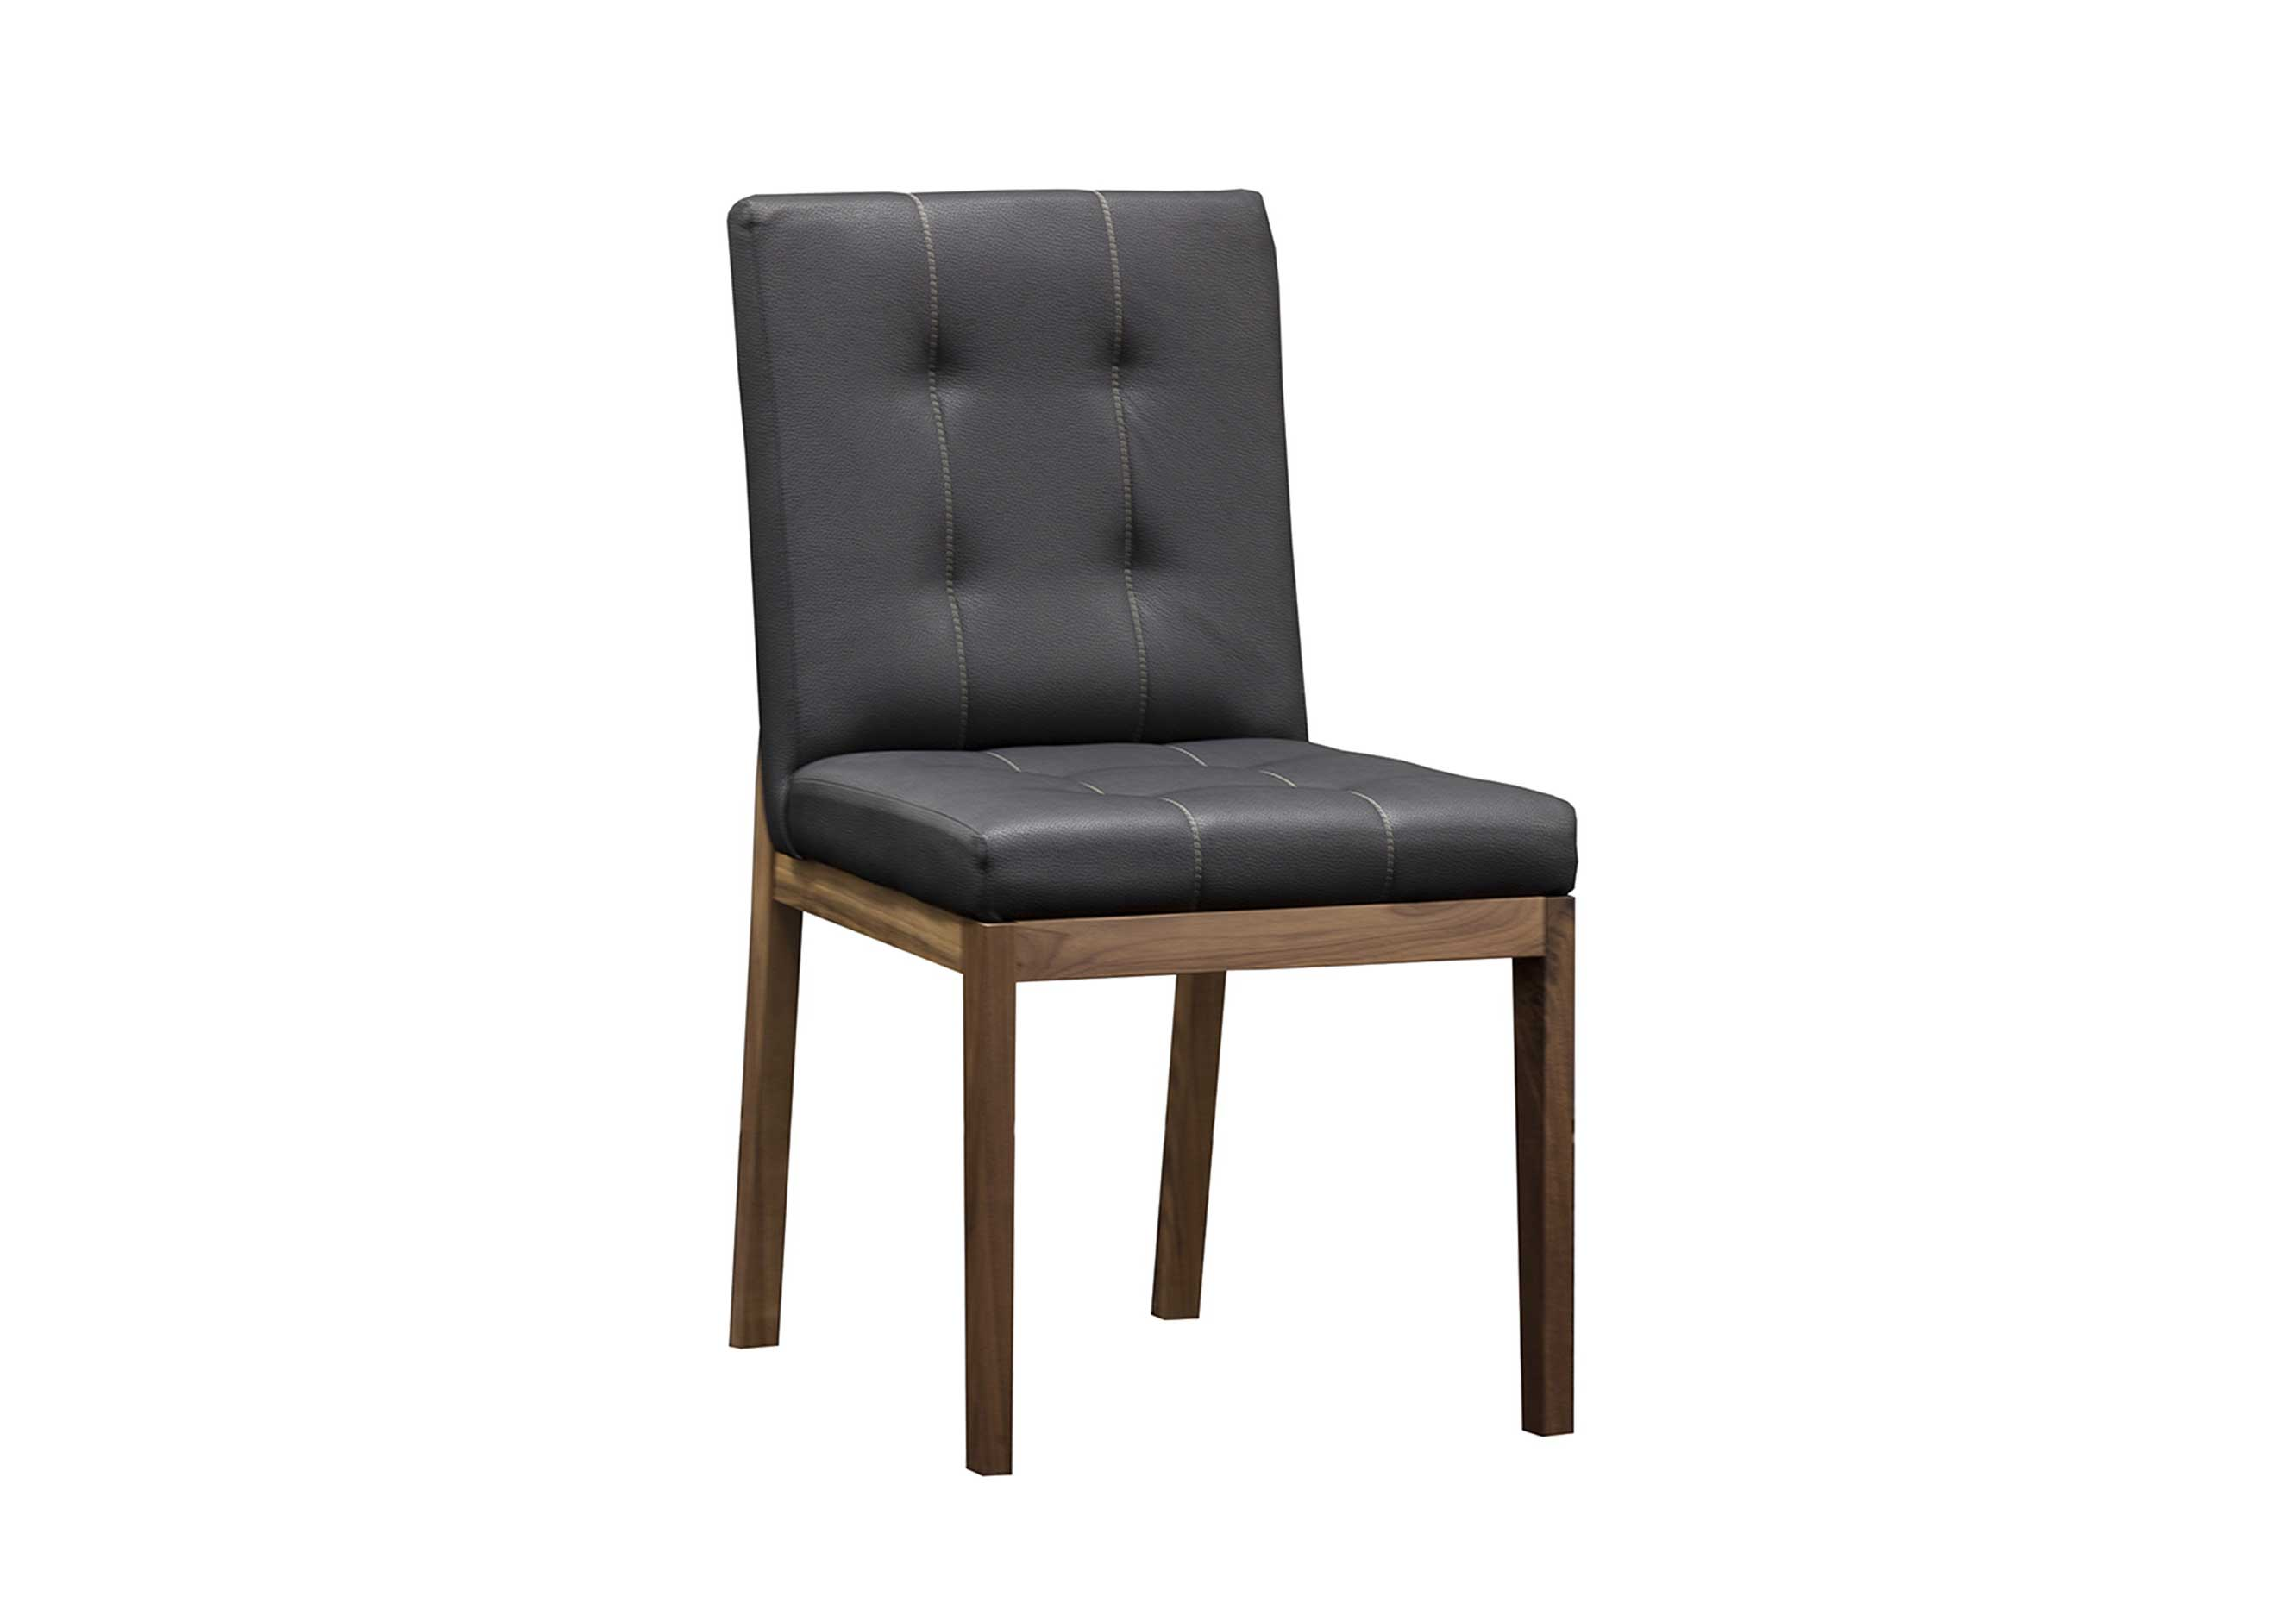 Chairs C-1200